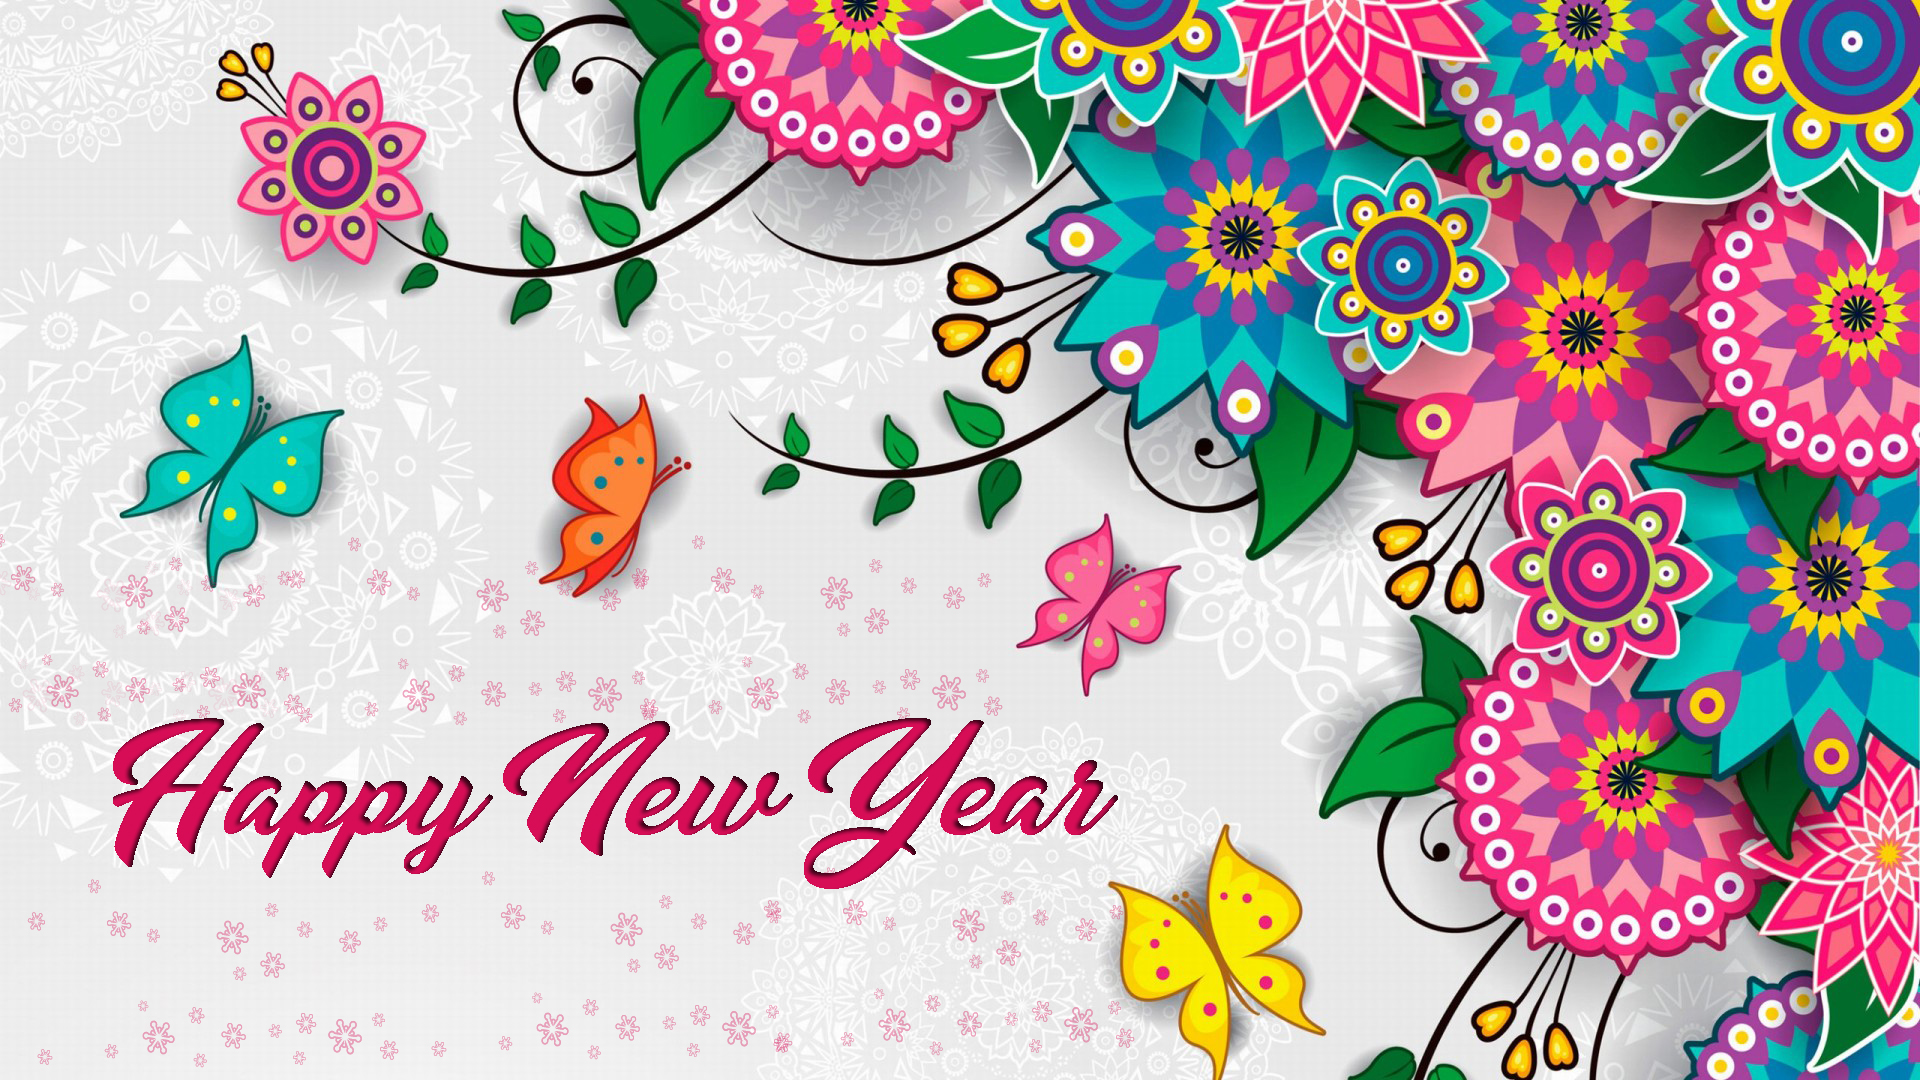 new-year-card-Images-Photos